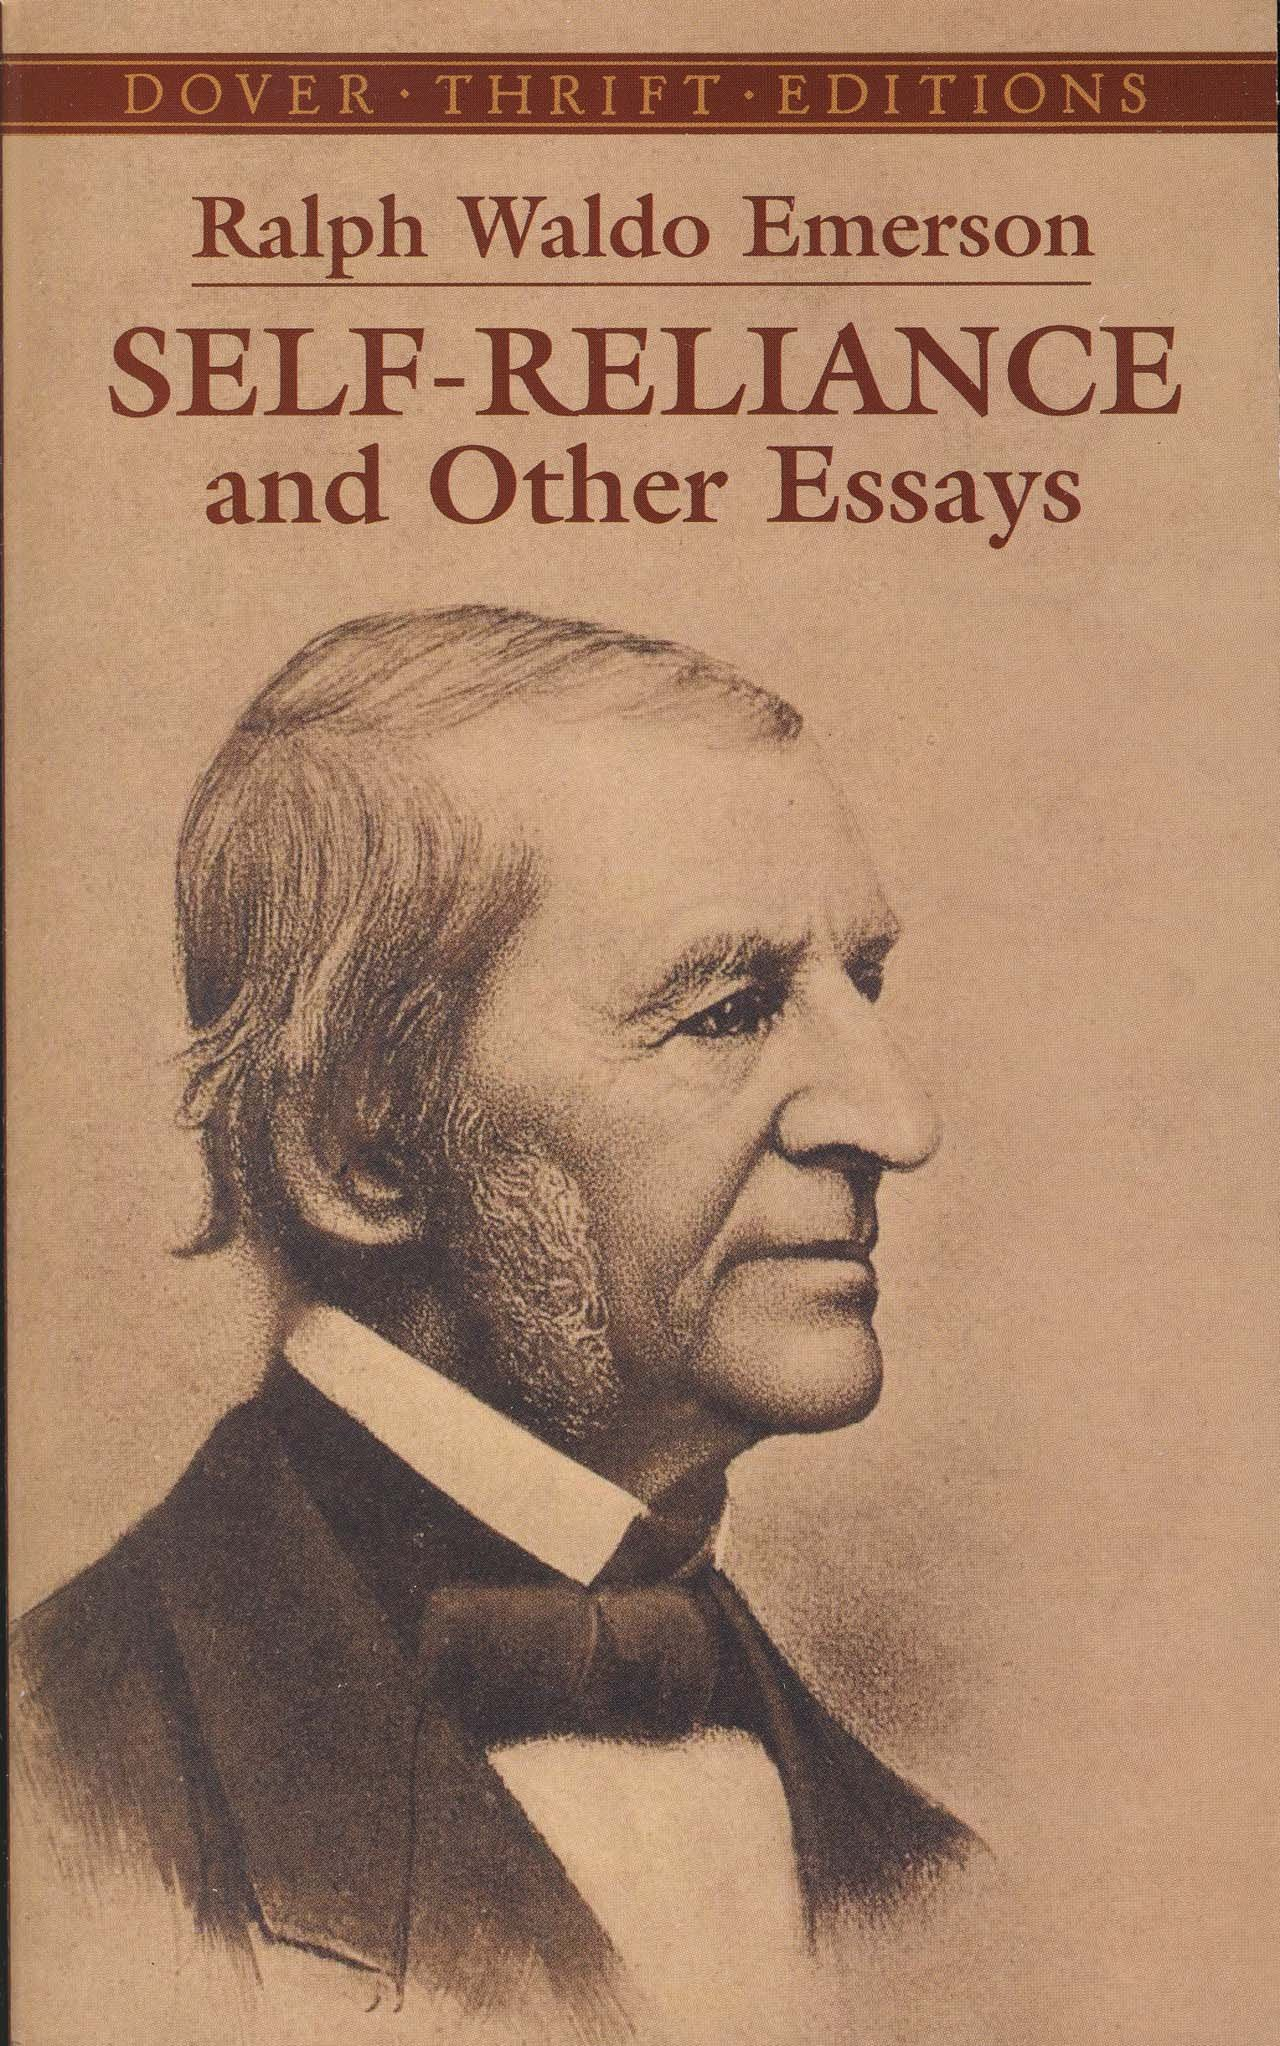 Nature (PDF), by Ralph Waldo Emerson